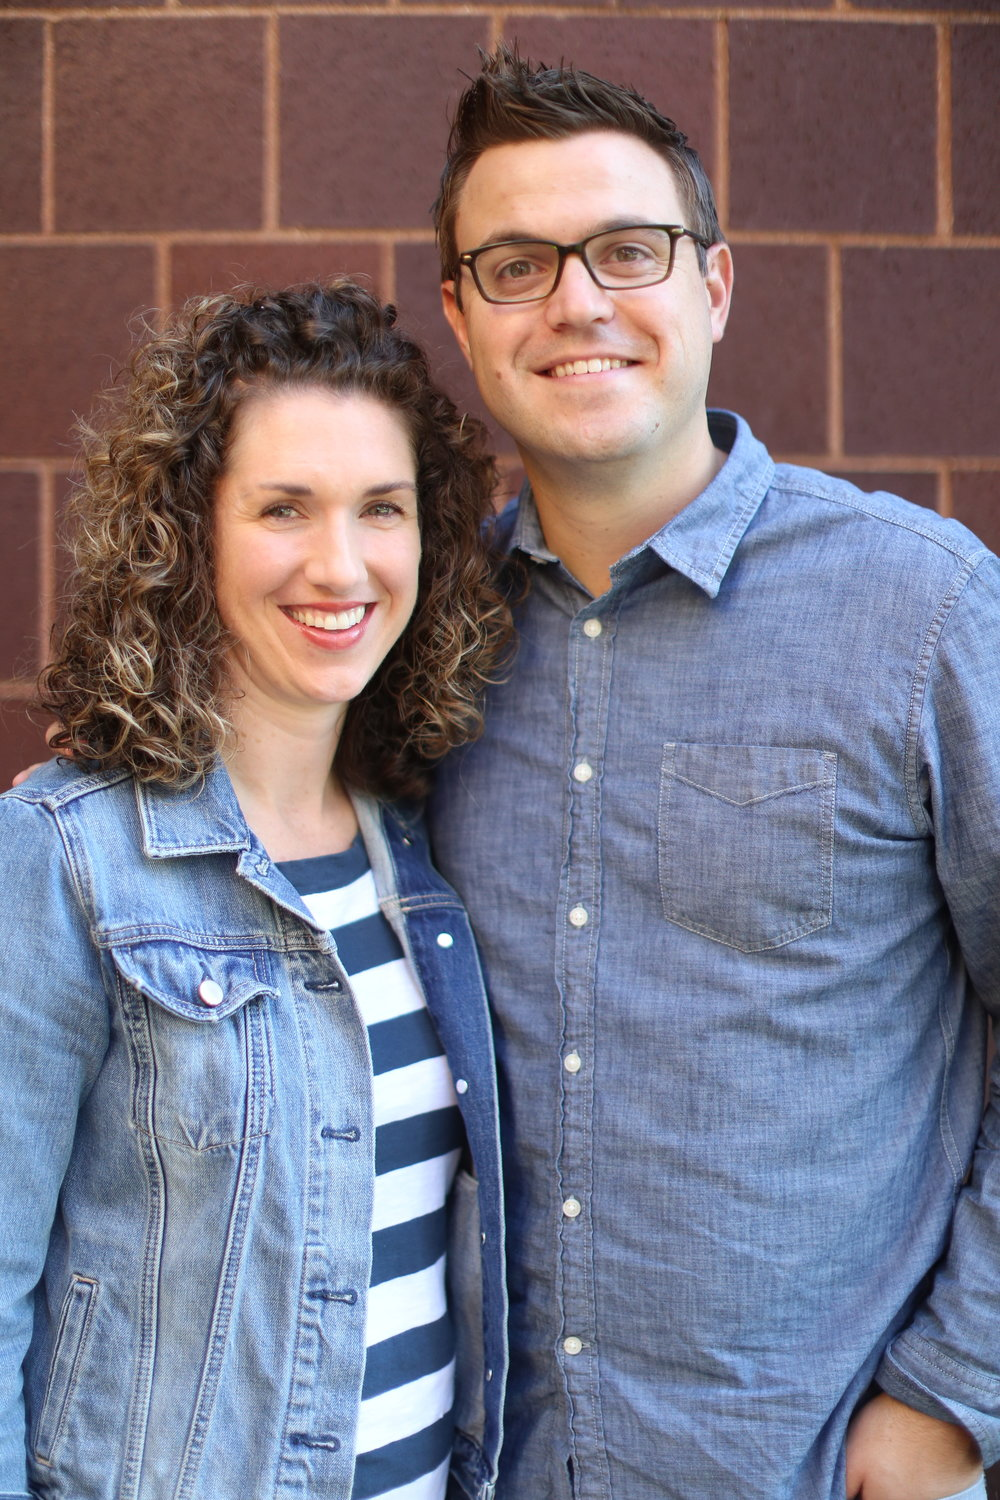 Bryan and Amanda Popa This group meets in Worthington. The 2nd and 4th Wednesday of the month at 7:15pm Email Amanda for directions:amandapopa@gmail.com